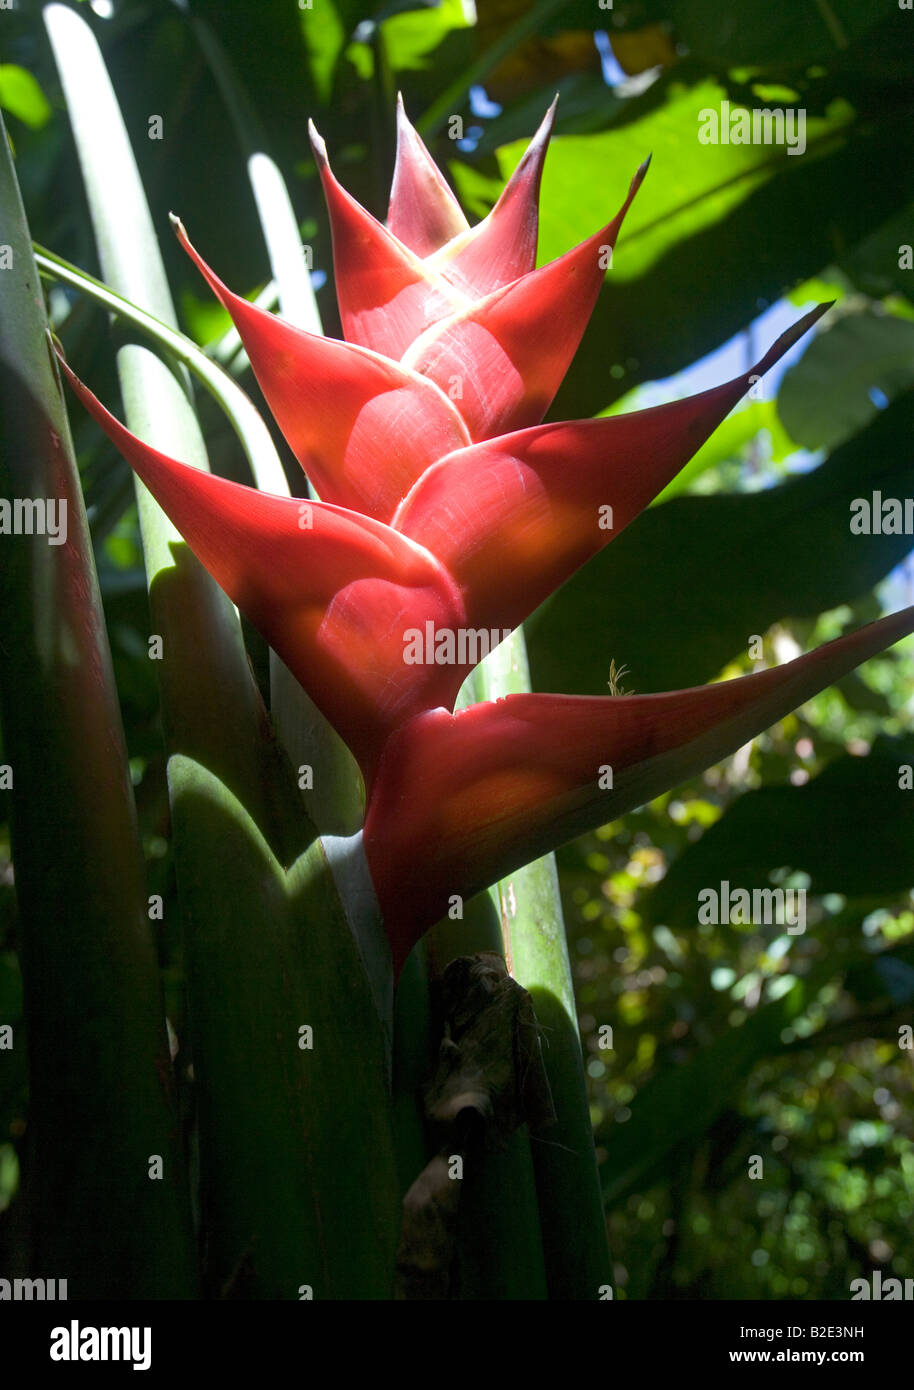 Red Heliconia flower in the jungles of St Lucia near the Pitons - Stock Image